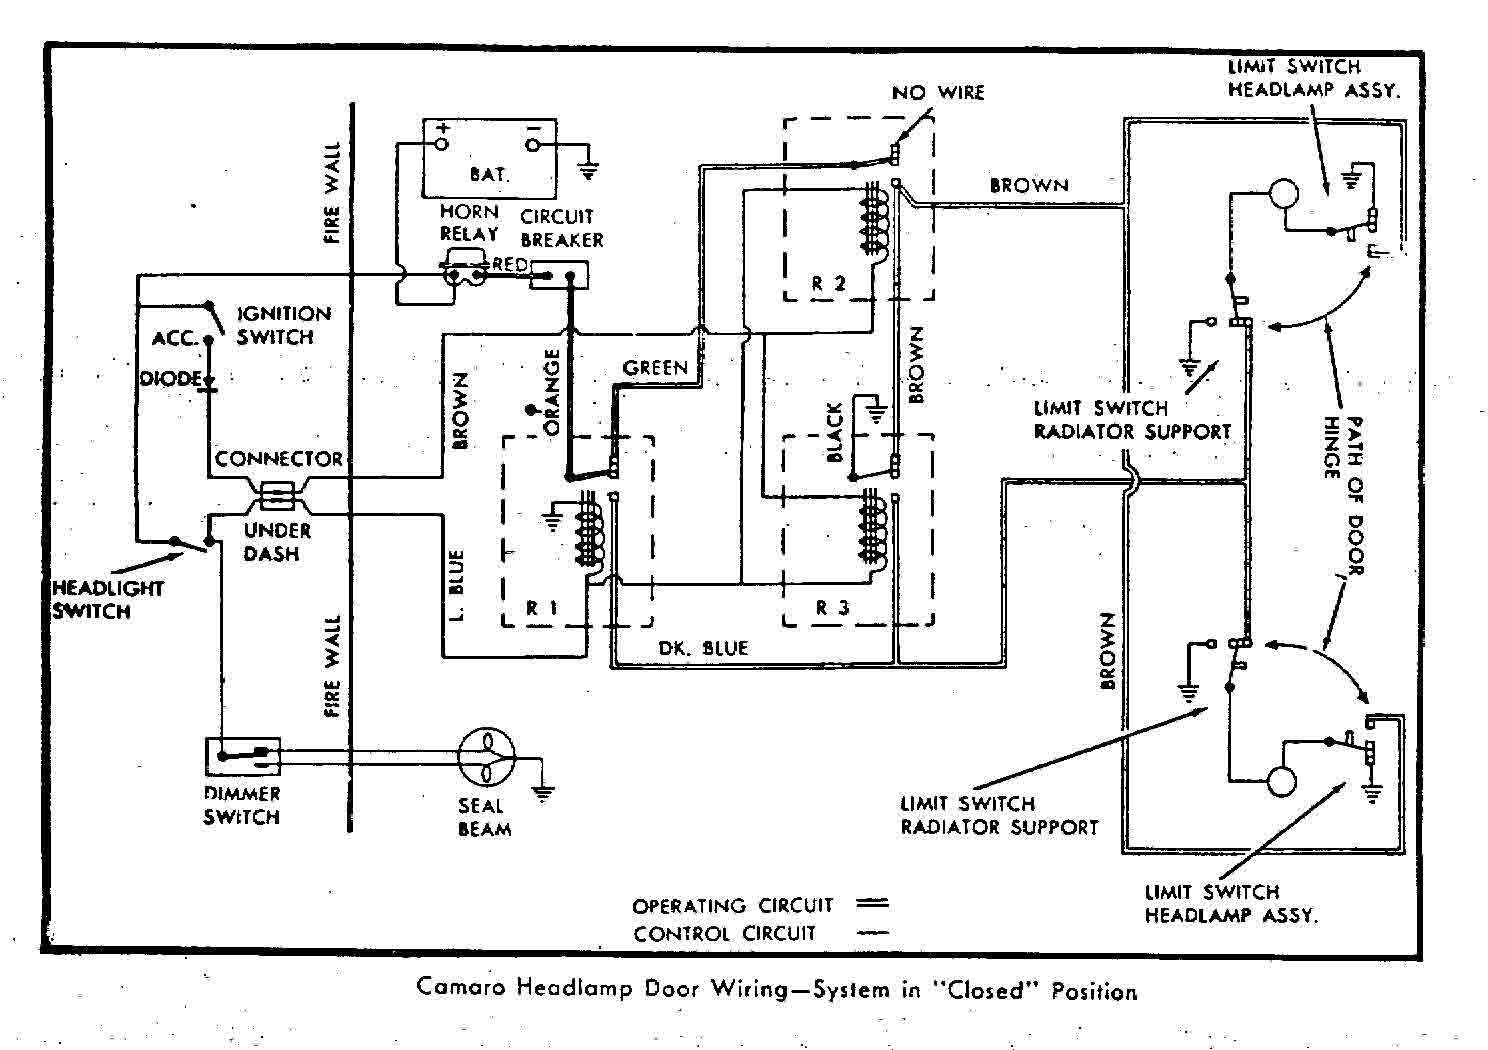 70 Chevelle Fuse Box Wiring Library Mustang Schematic 80 Camaro Diagram Detailed Schematics 1970 1968